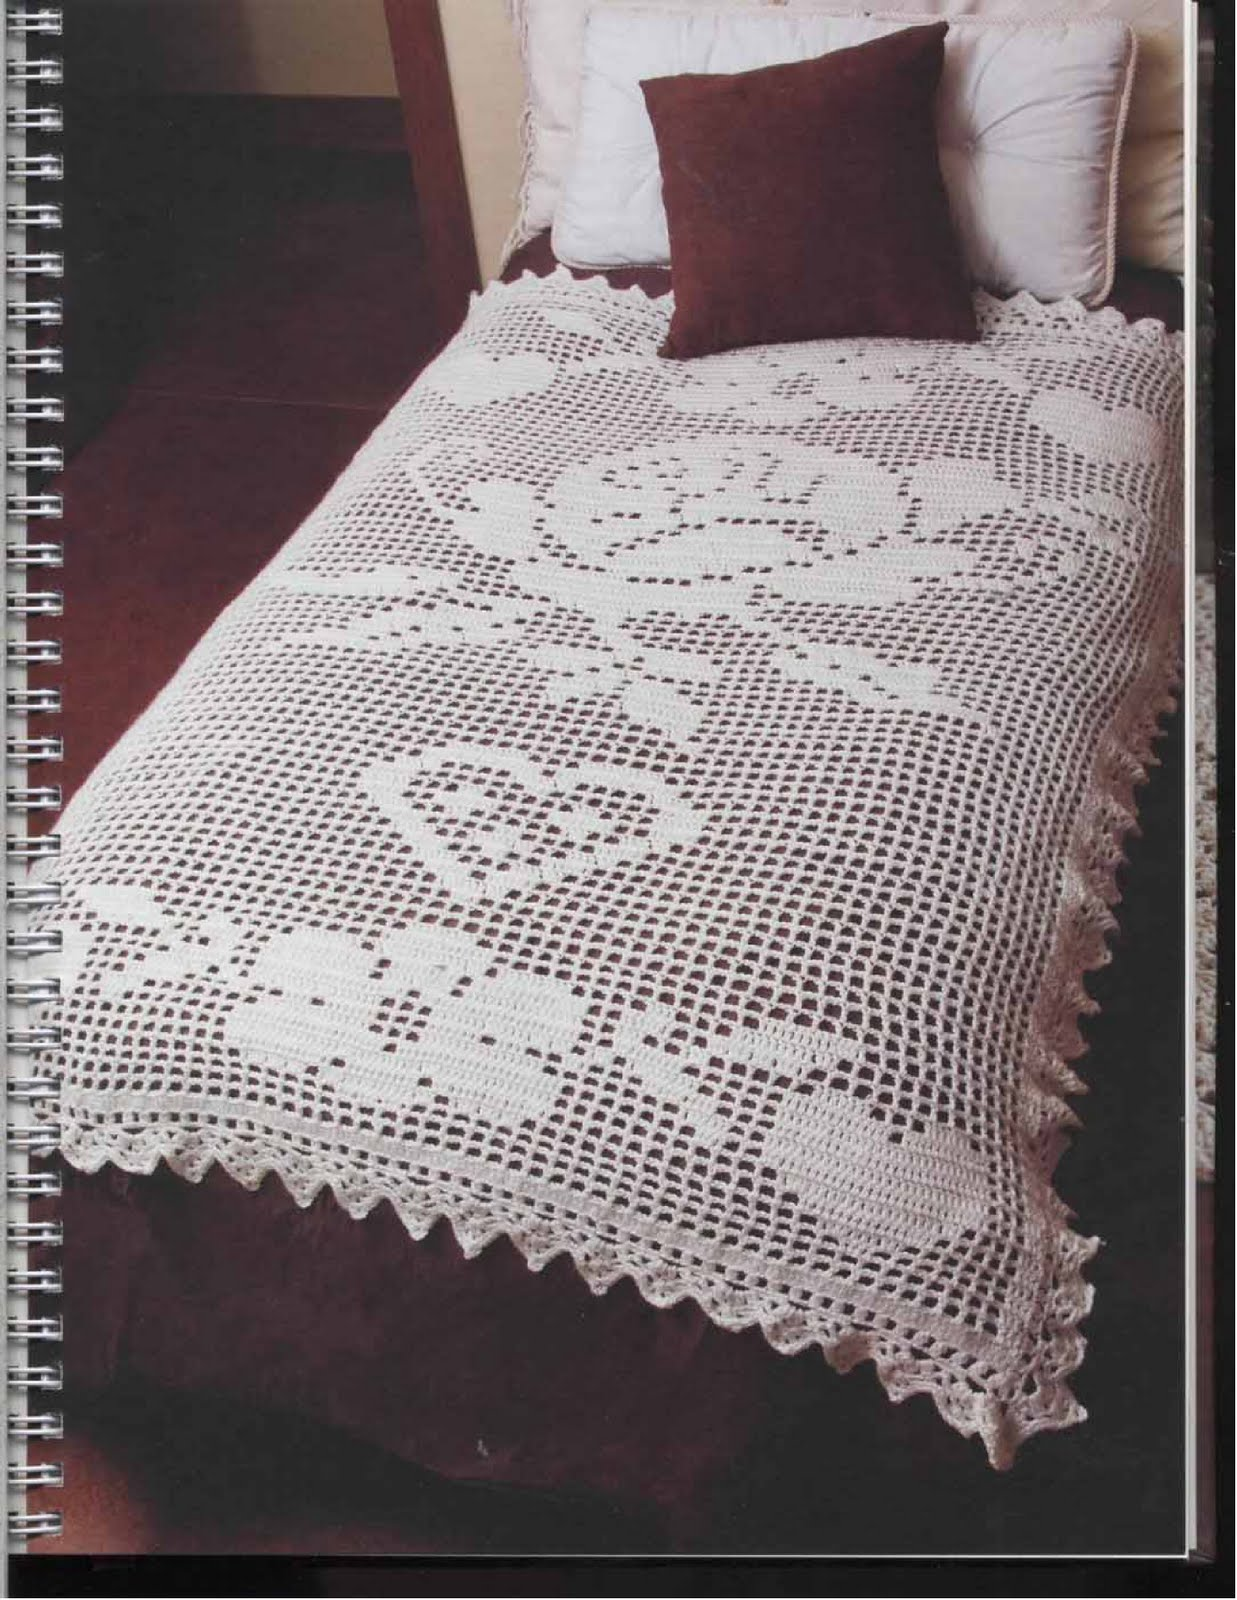 mossita bella patrones y gr ficos crochet colcha para. Black Bedroom Furniture Sets. Home Design Ideas